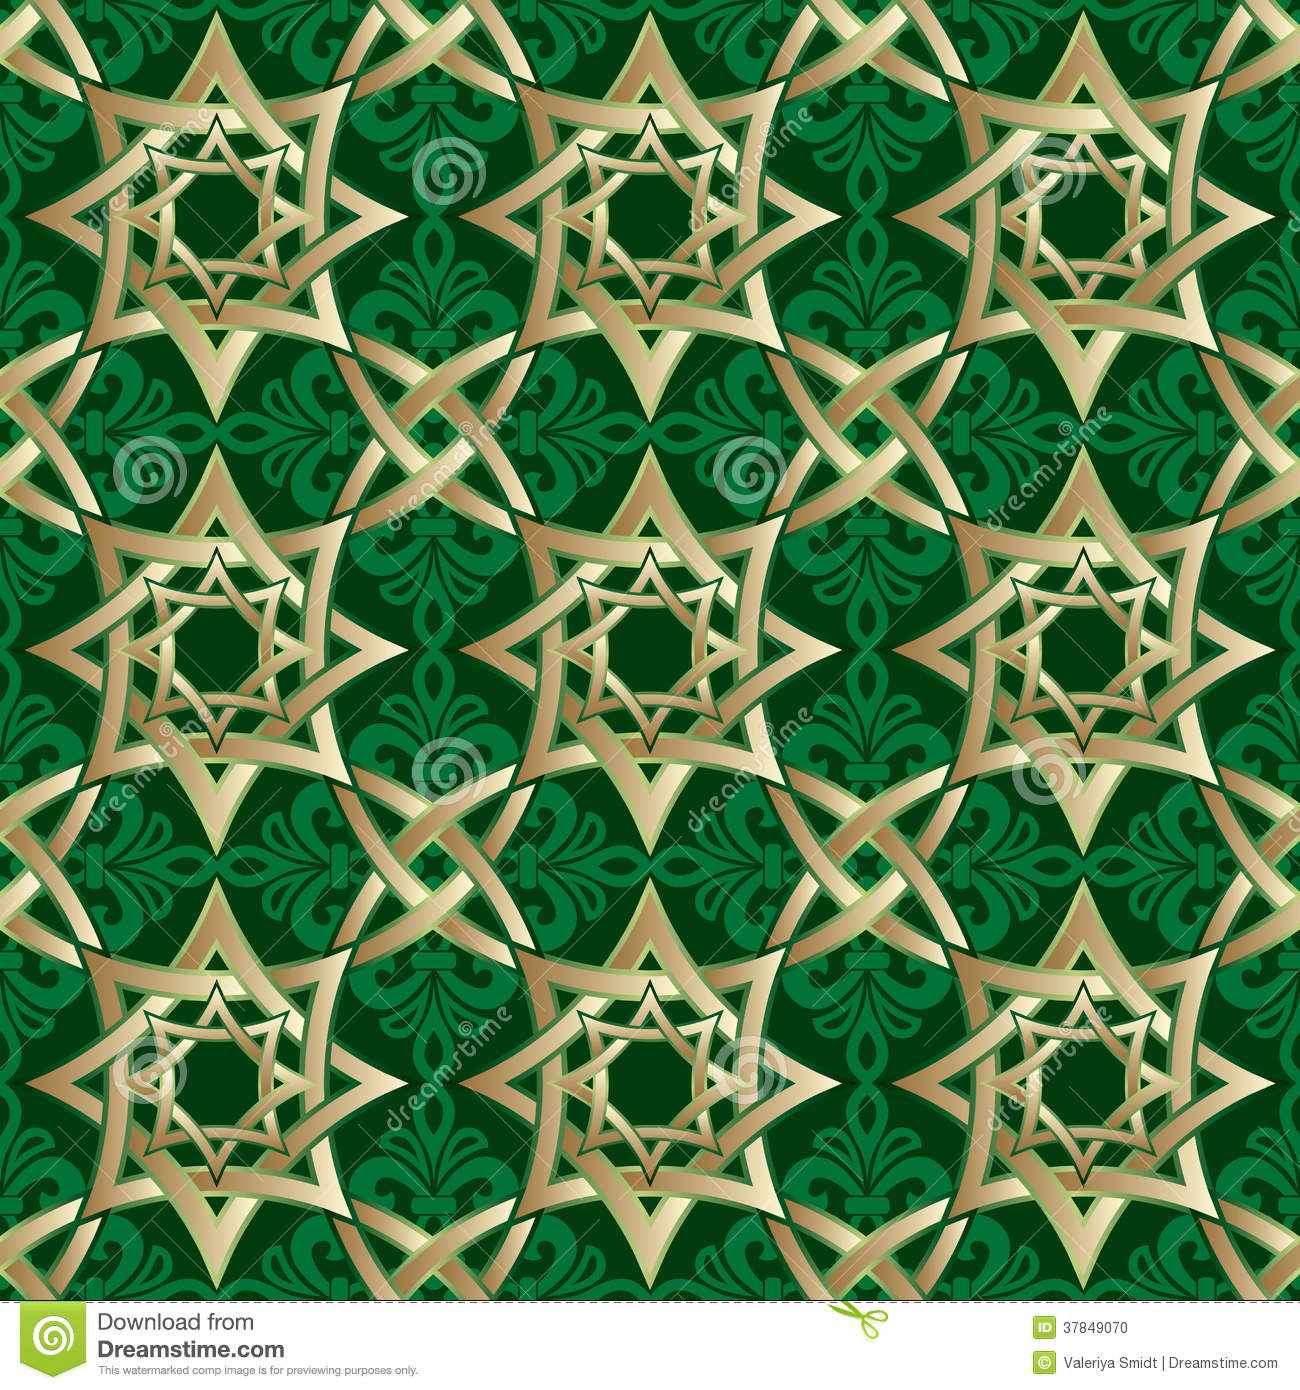 geometric patterns from islamic art and architecture pdf